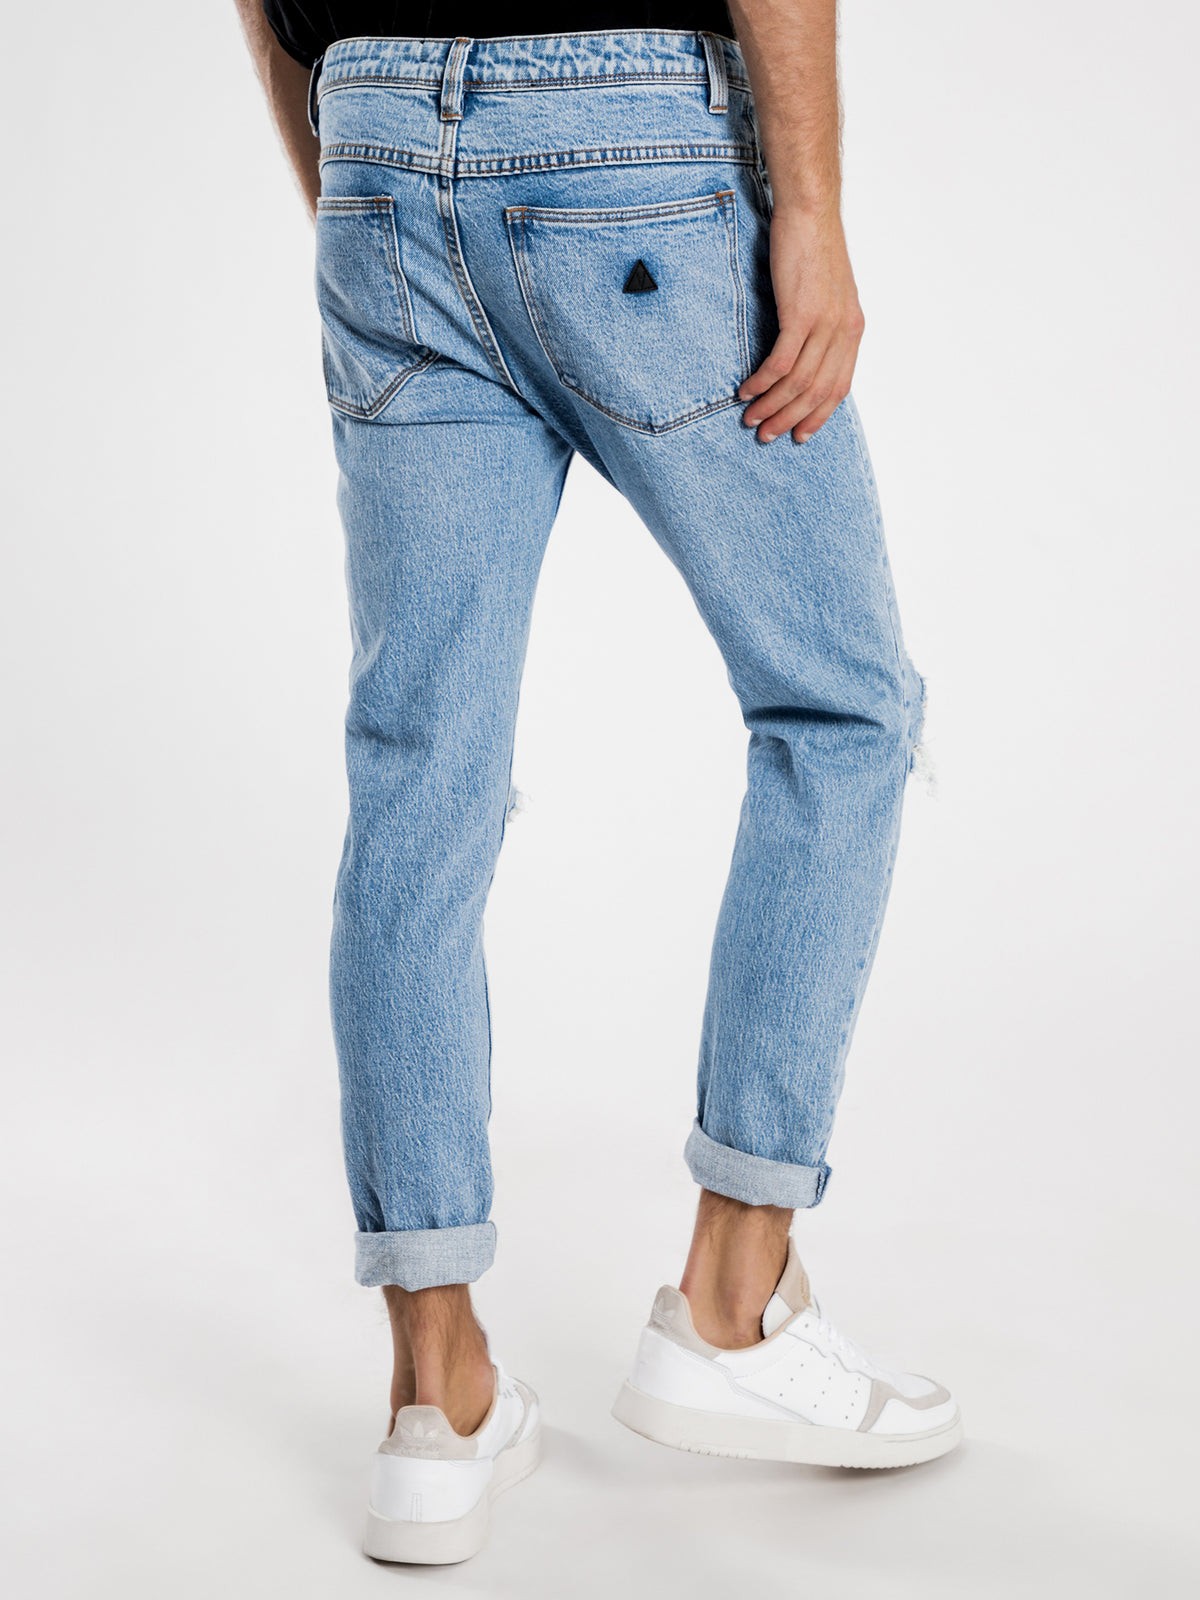 A Dropped Skinny Turn Up Jeans in Sketchy Blue Denim